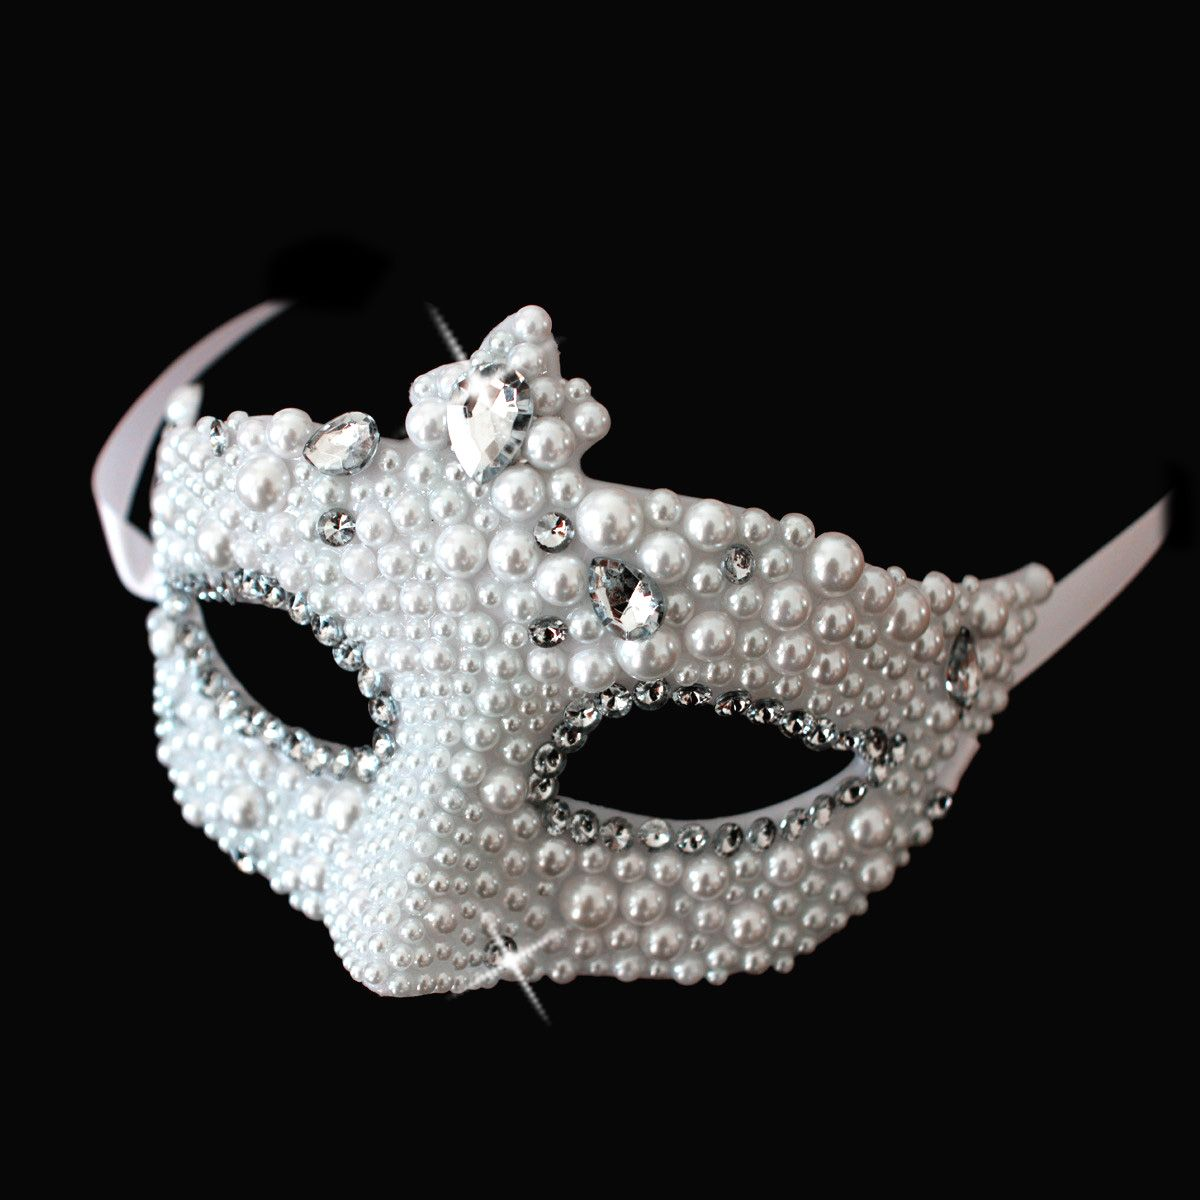 Masquerade mask masquerade mask vine mask metal lace masquerade - 3pcs Free Shipping Rhinestone Handmade Mask Luxury Diamond Masquerade Masks Princess Bride Mask China